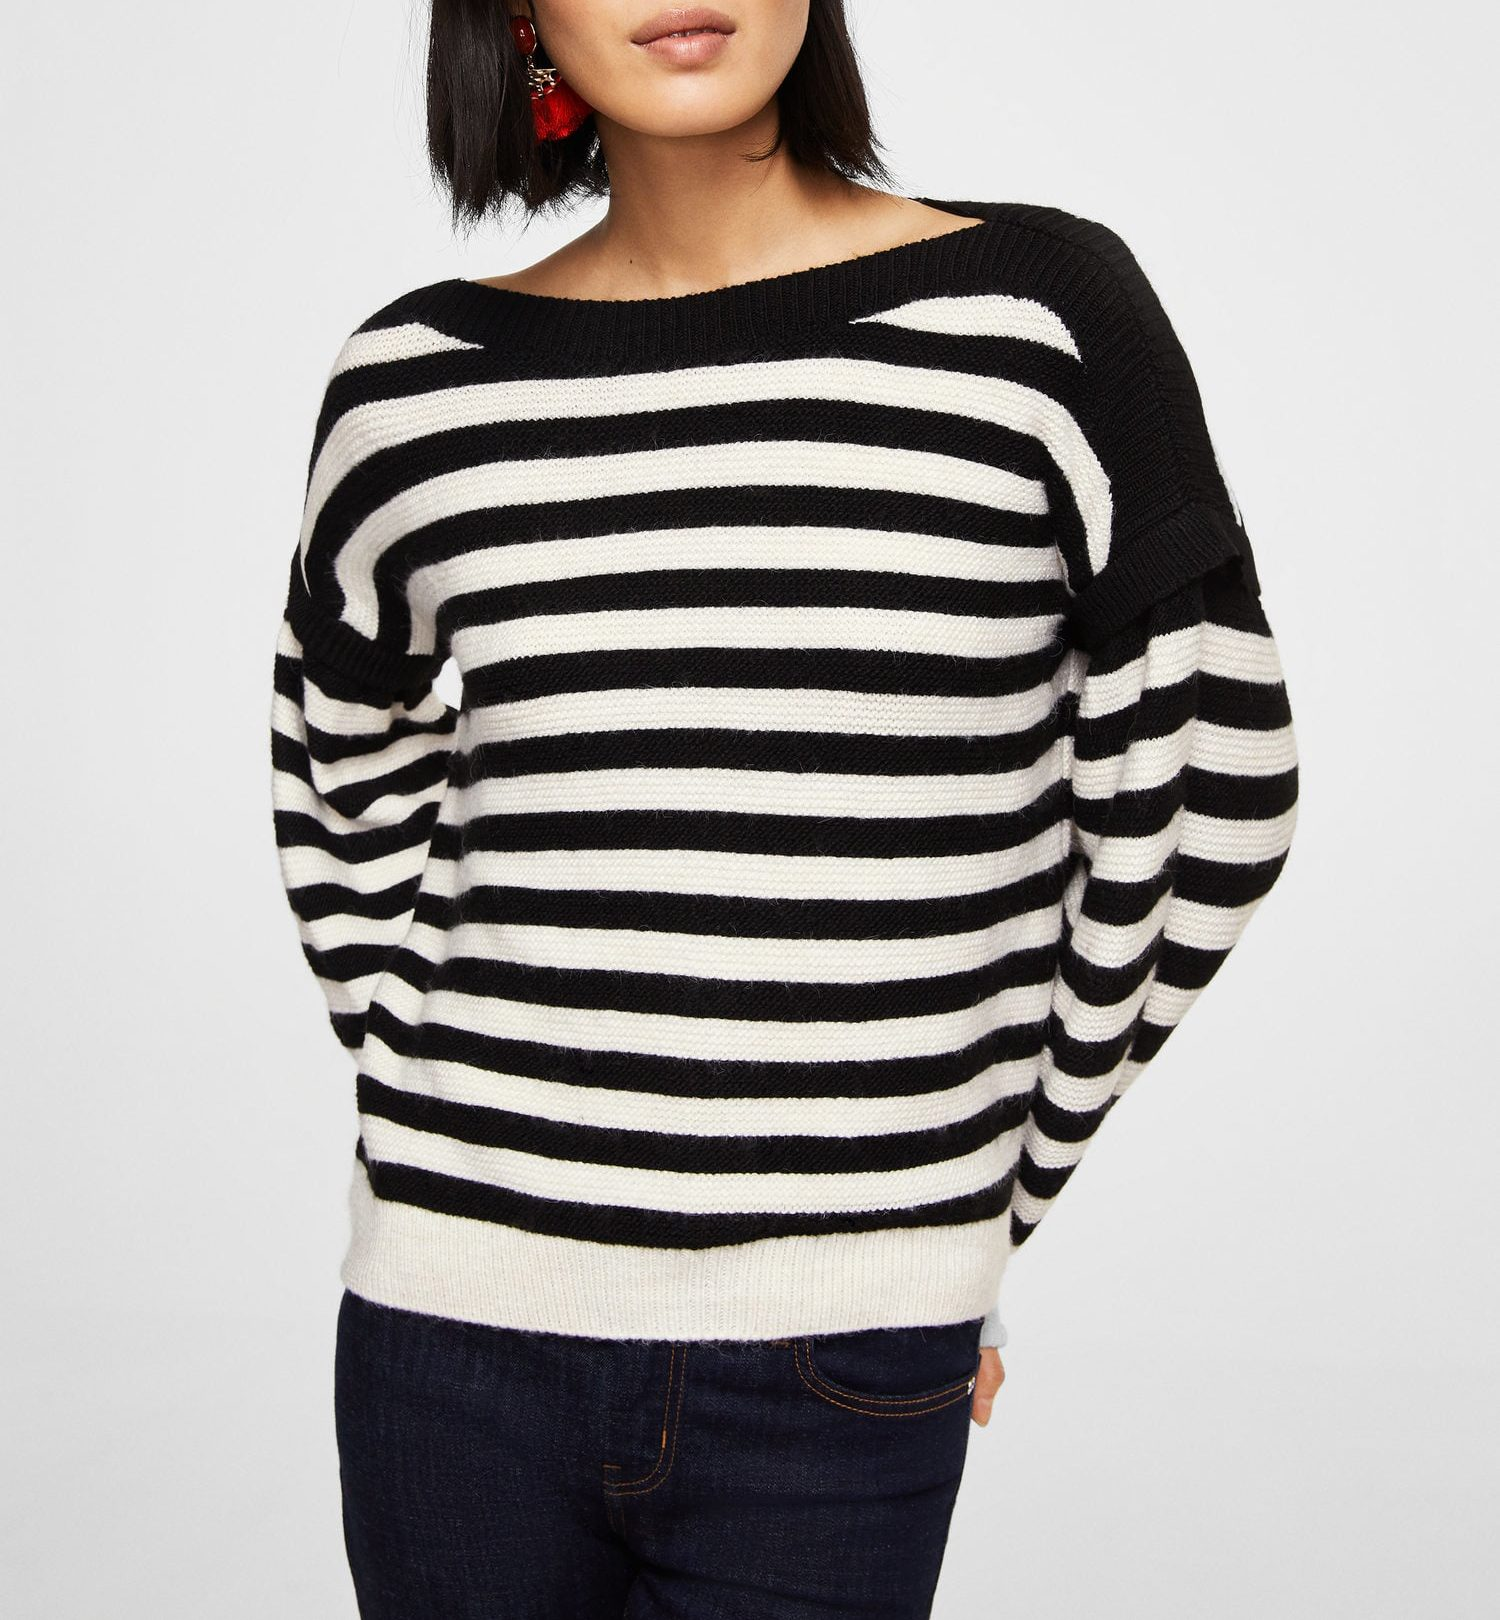 mango striped sweater